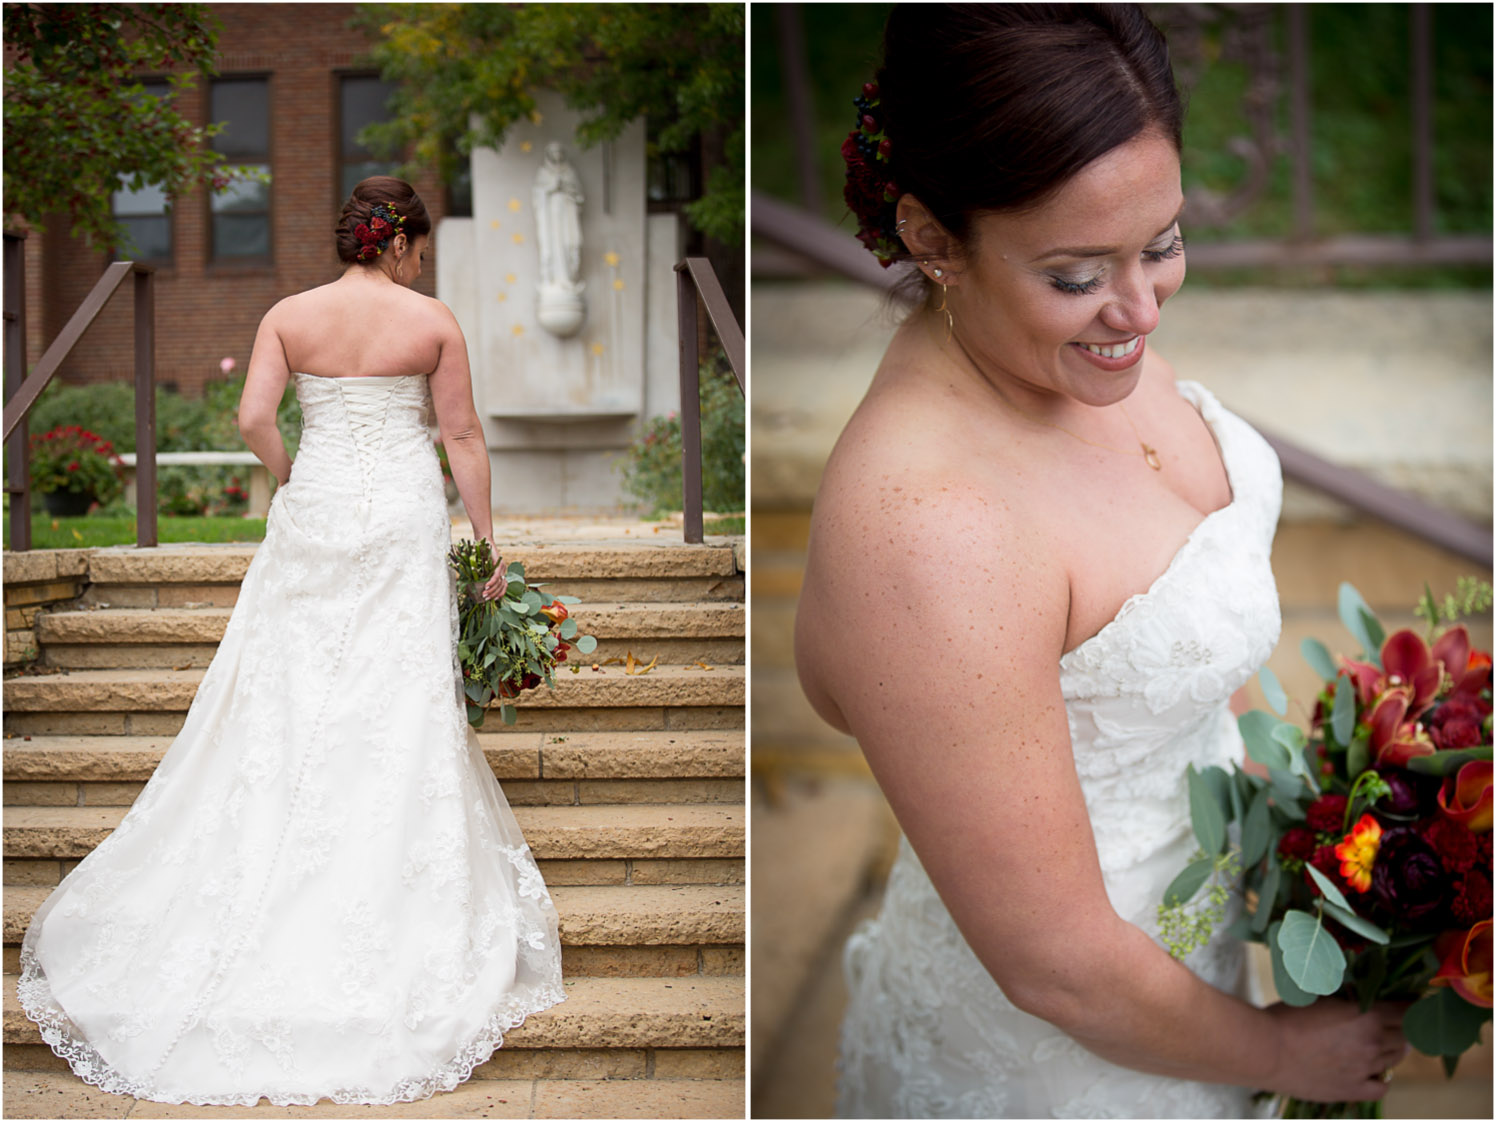 11-relaxed-fun-casual-bridal-portraits-back-of-the-dress-mn-fall-colors-wedding-photographer-mahonen-photography.jpg